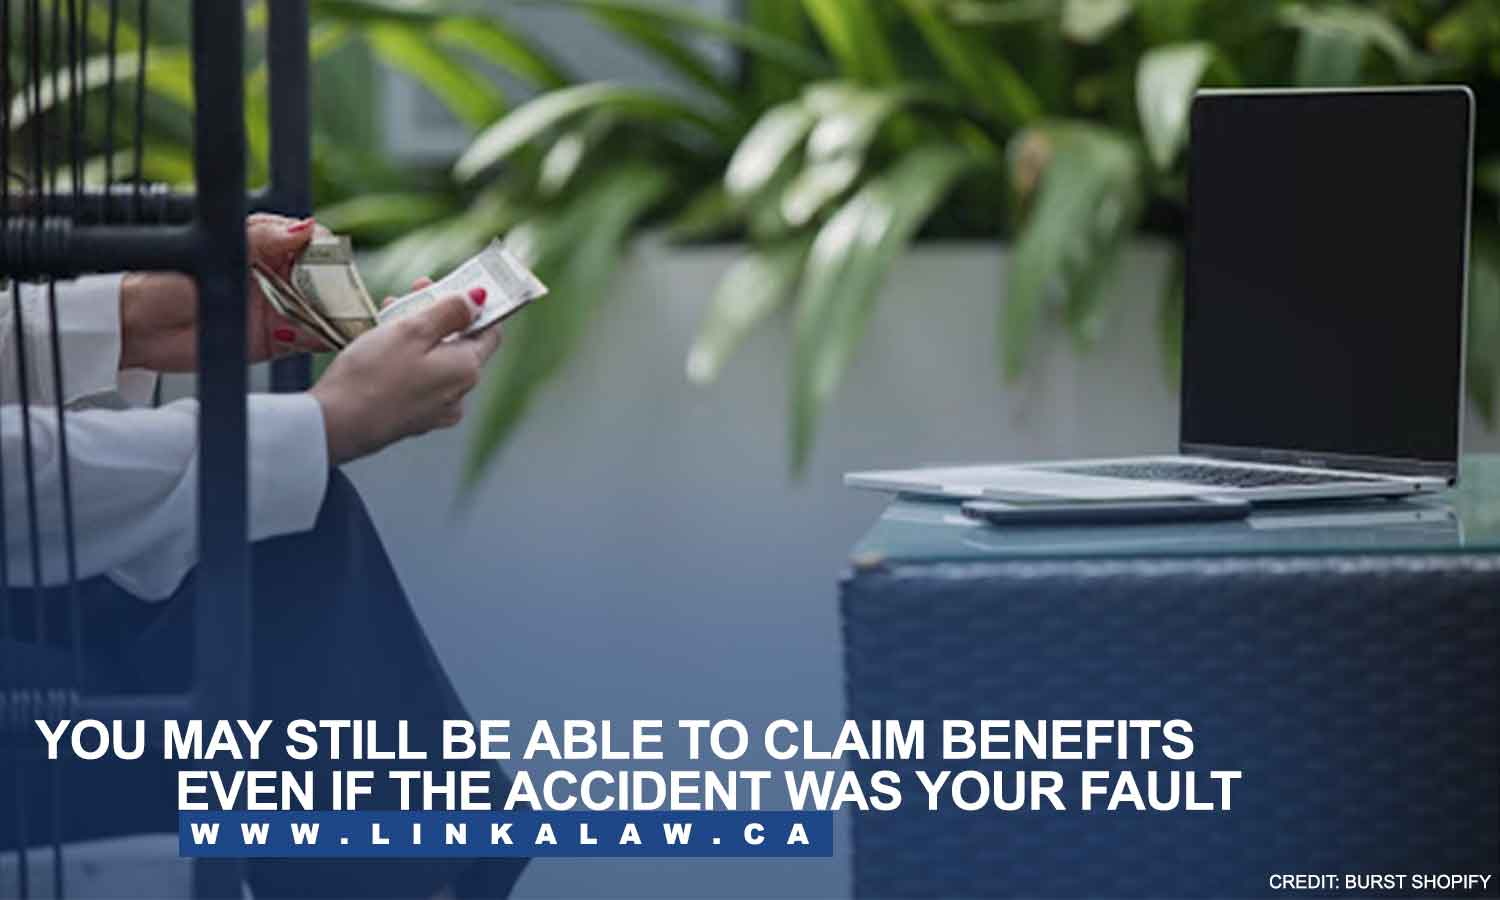 You may still be able to claim benefits even if the accident was your fault